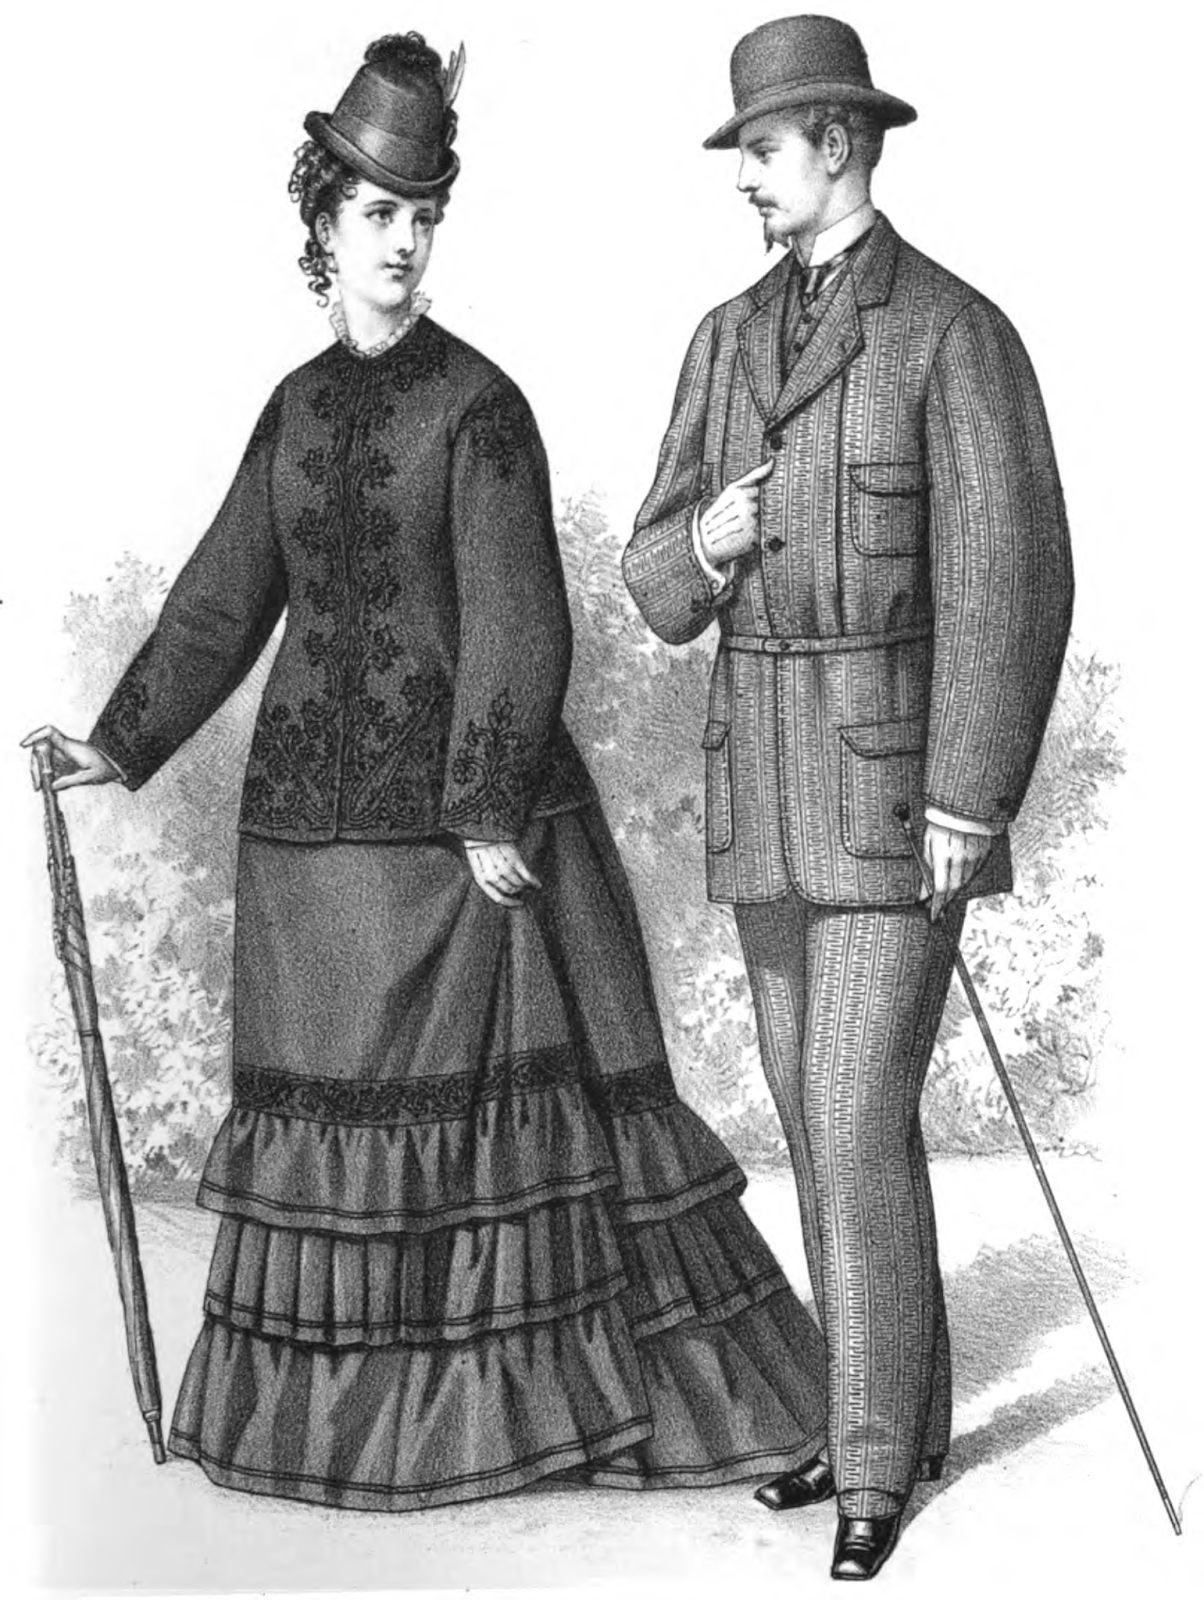 19th century clothing for women